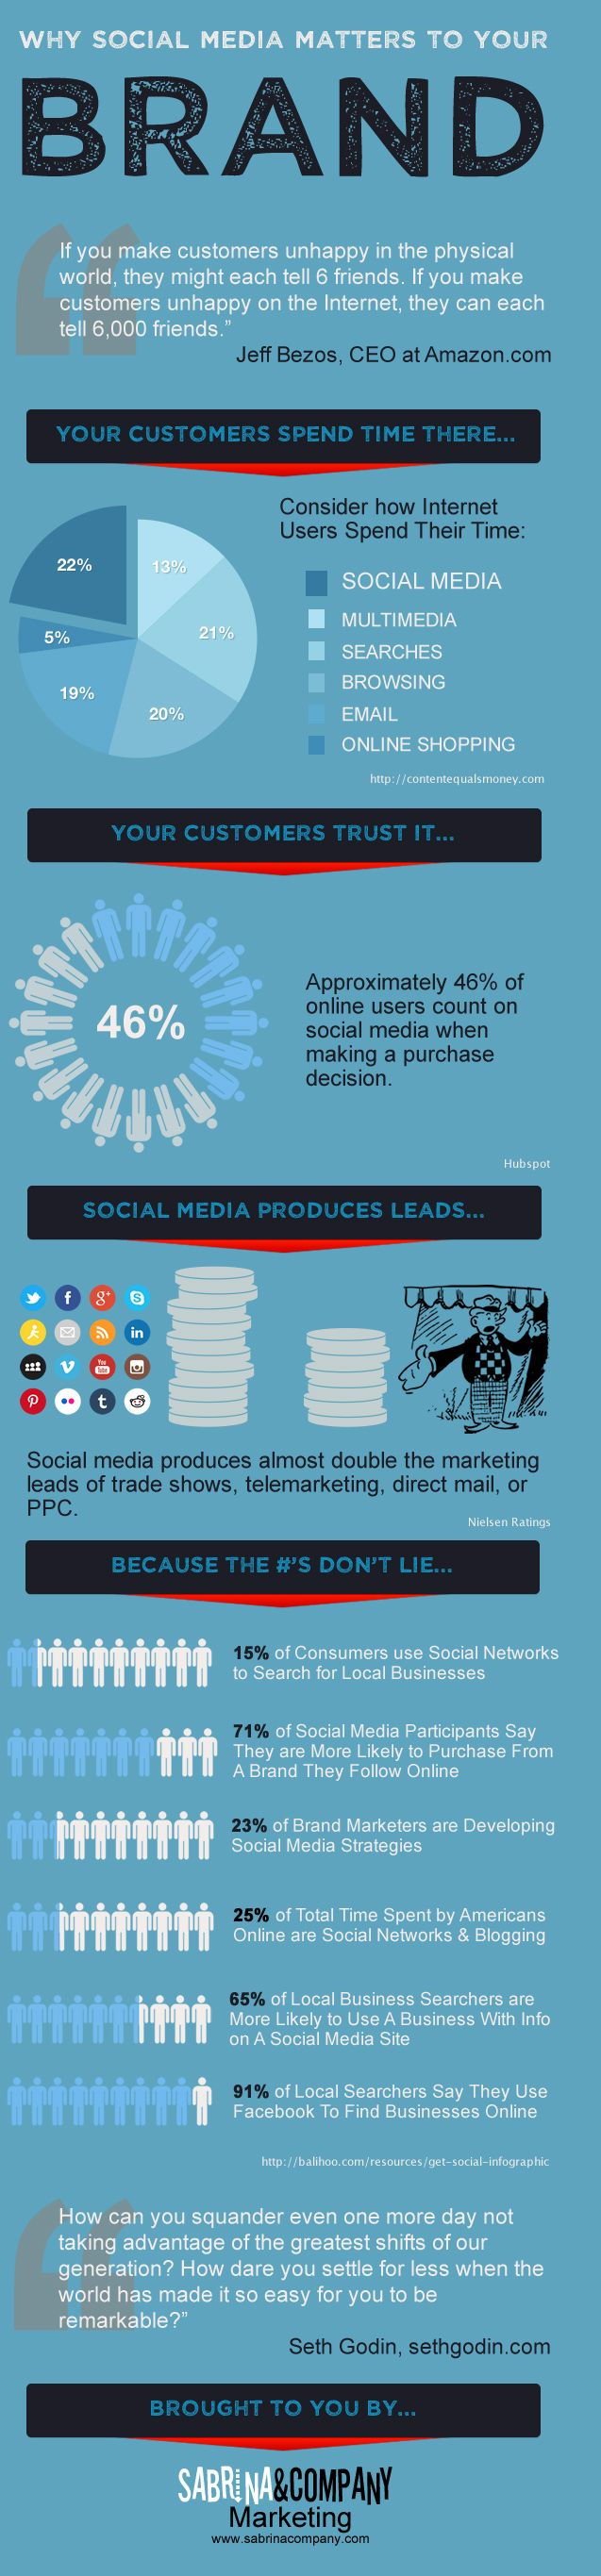 Why #SocialMedia Matters to Your #Brand